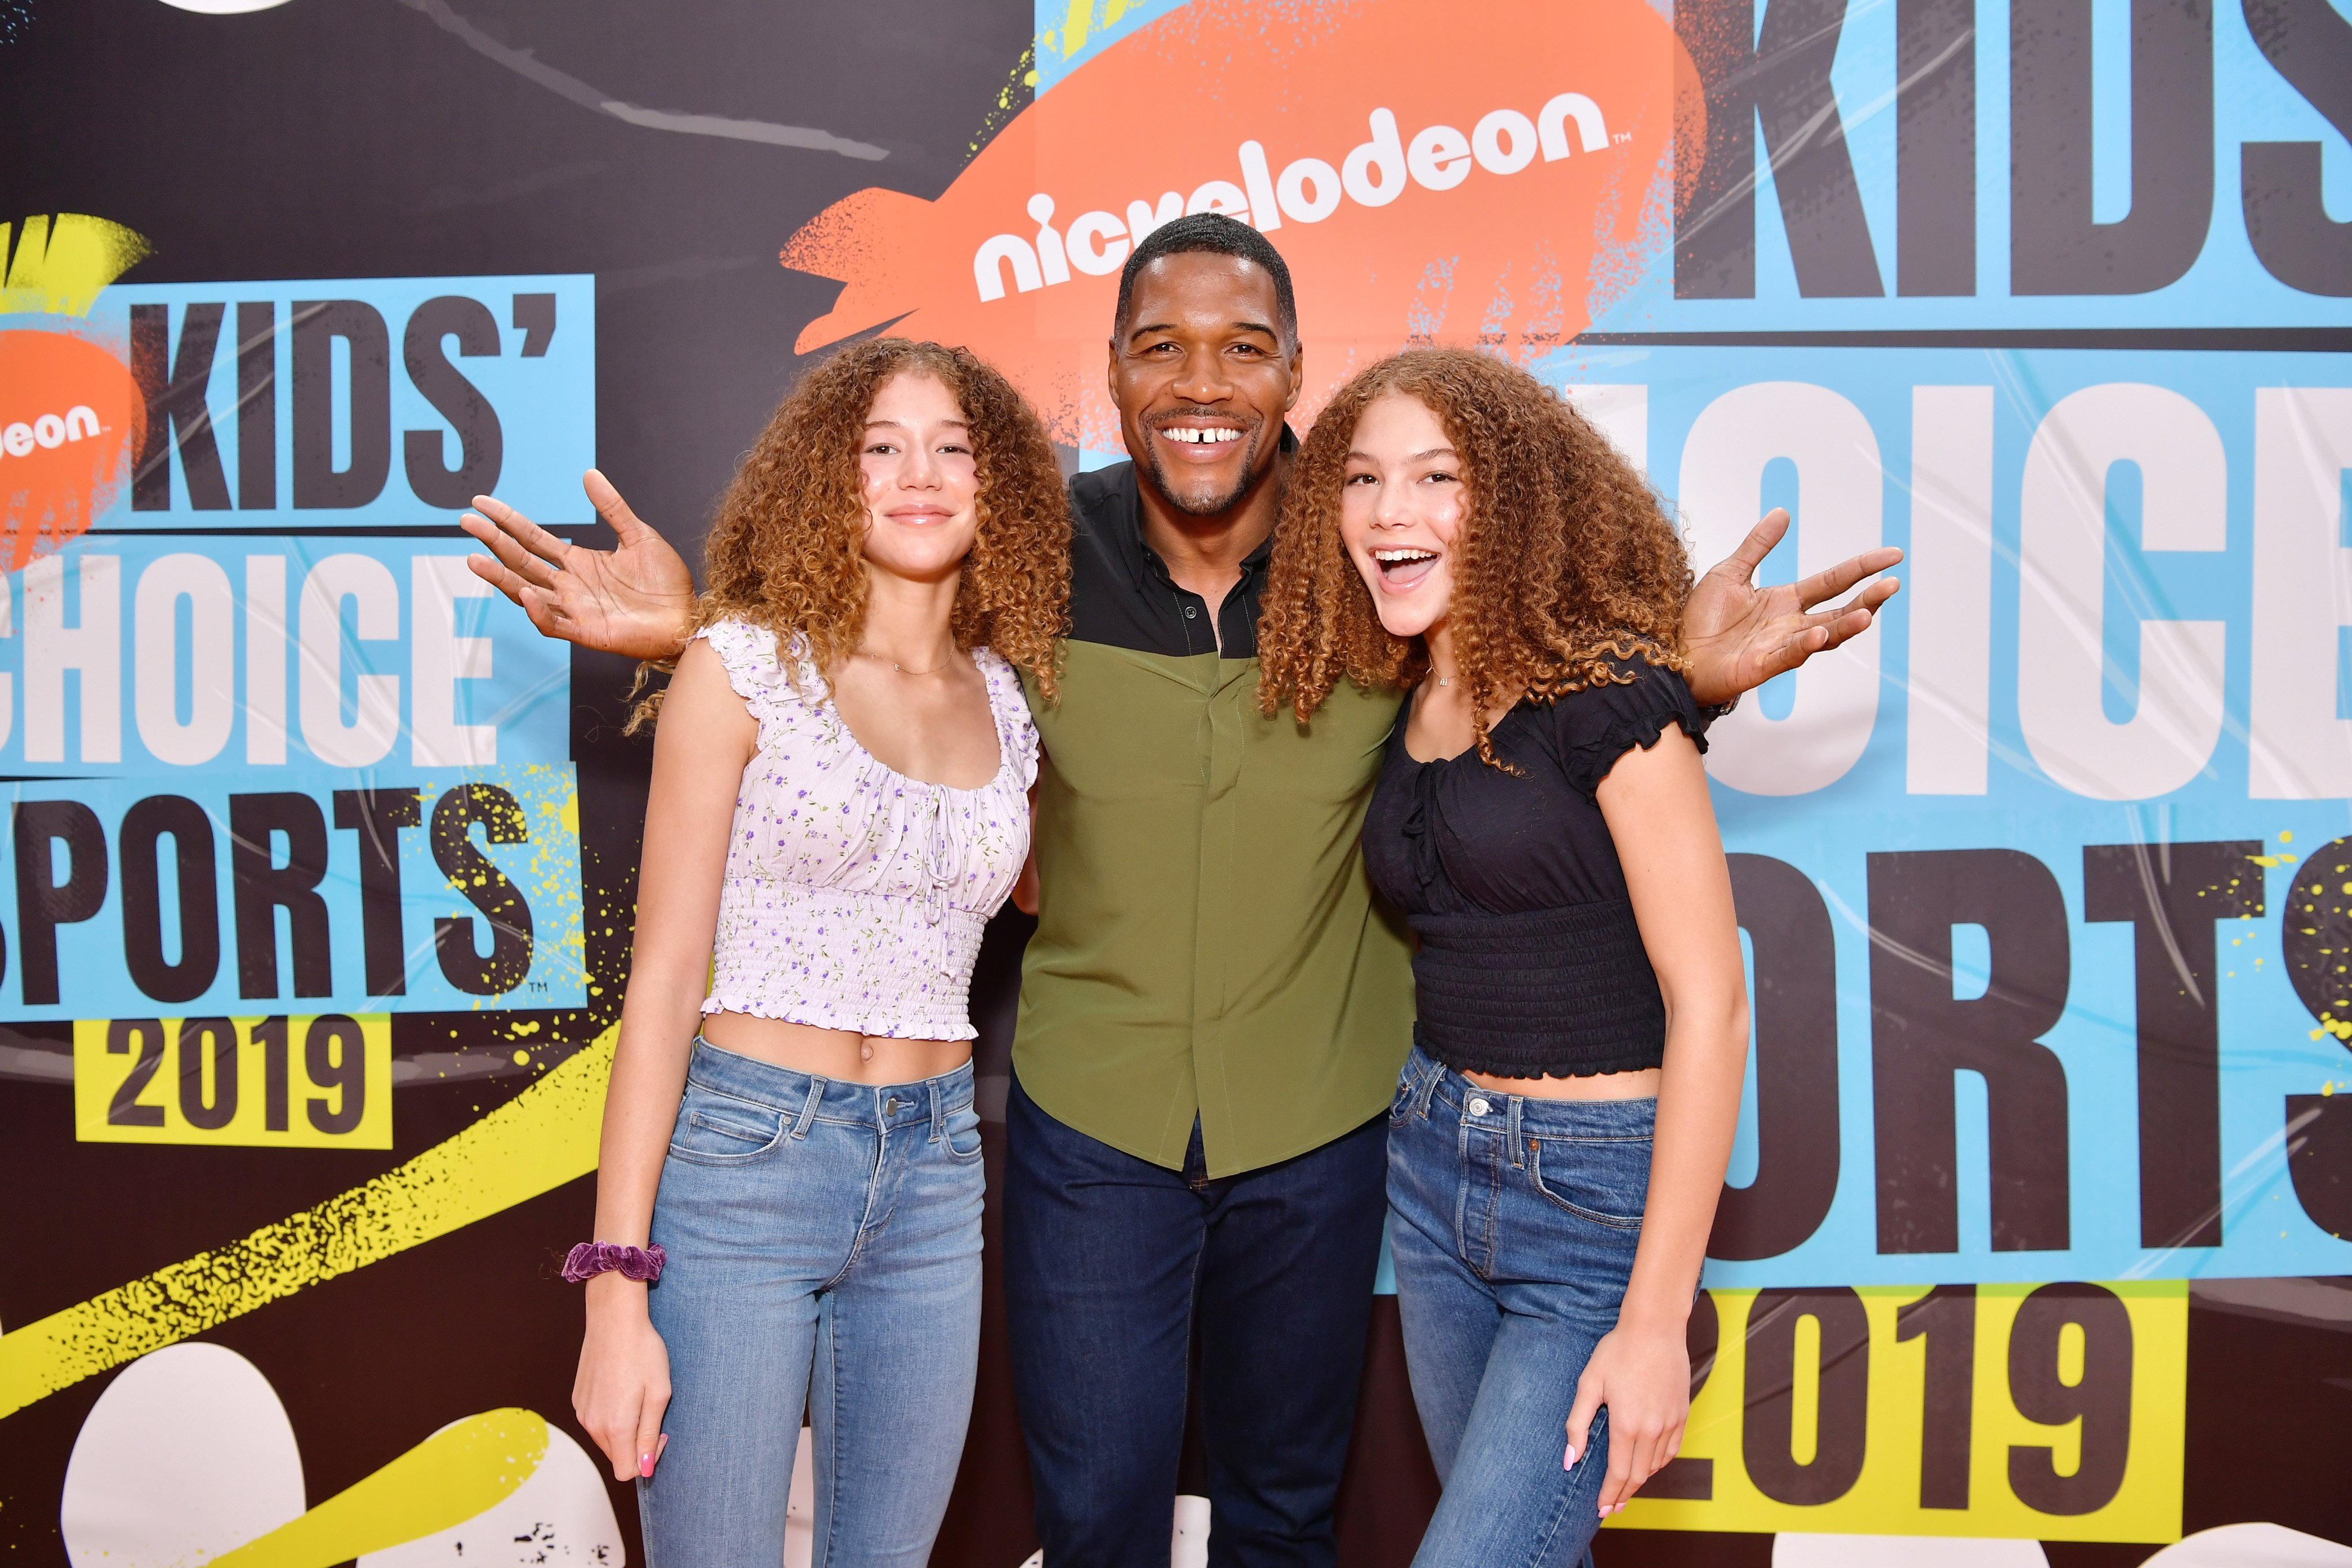 Michael Strahan and his twin daughters at Nickelodeon Kids' Choice Sports on July 11, 2019 in California. Photo: Getty Images